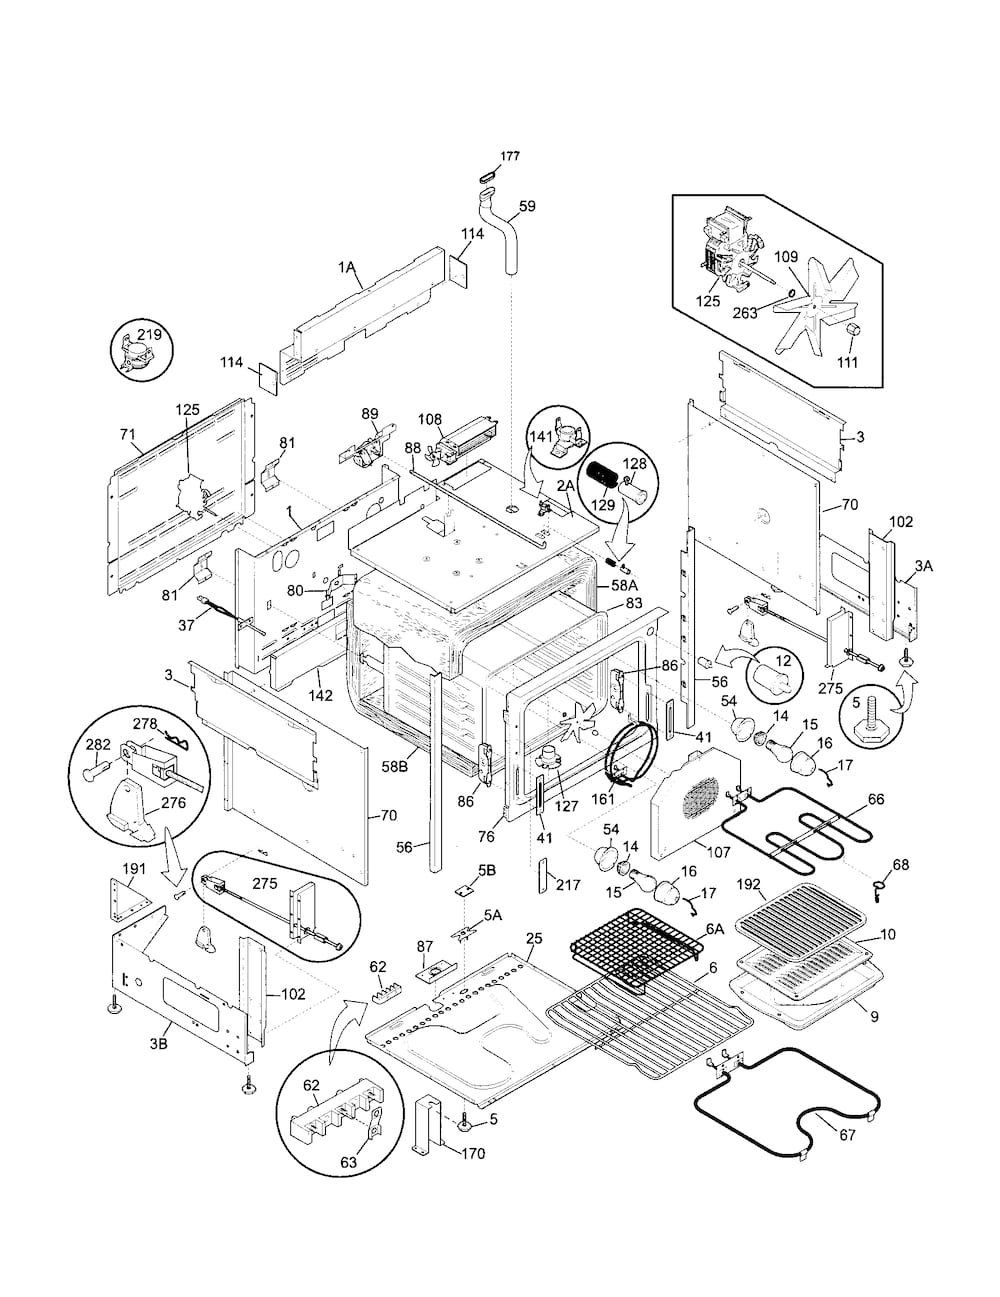 Kenmore Elite Electric Slide-In Range Parts | Model 79046803992 intended for Kenmore Elite Dishwasher 665 Parts Diagram